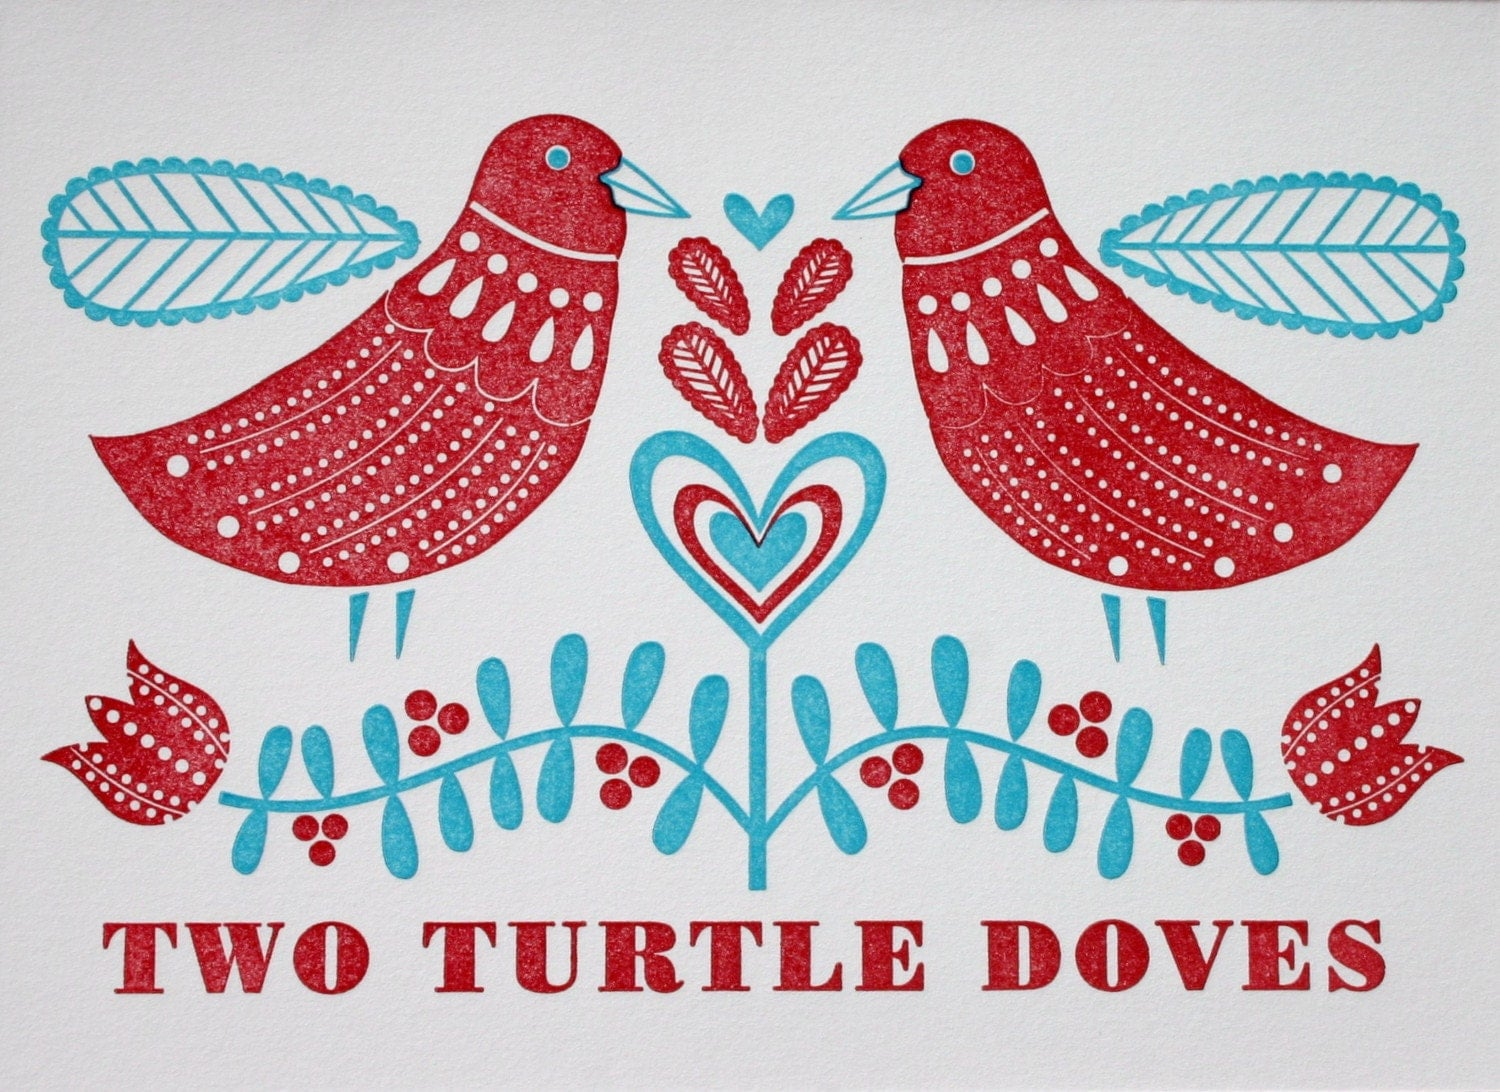 2 Turtle Doves — Crafthubs